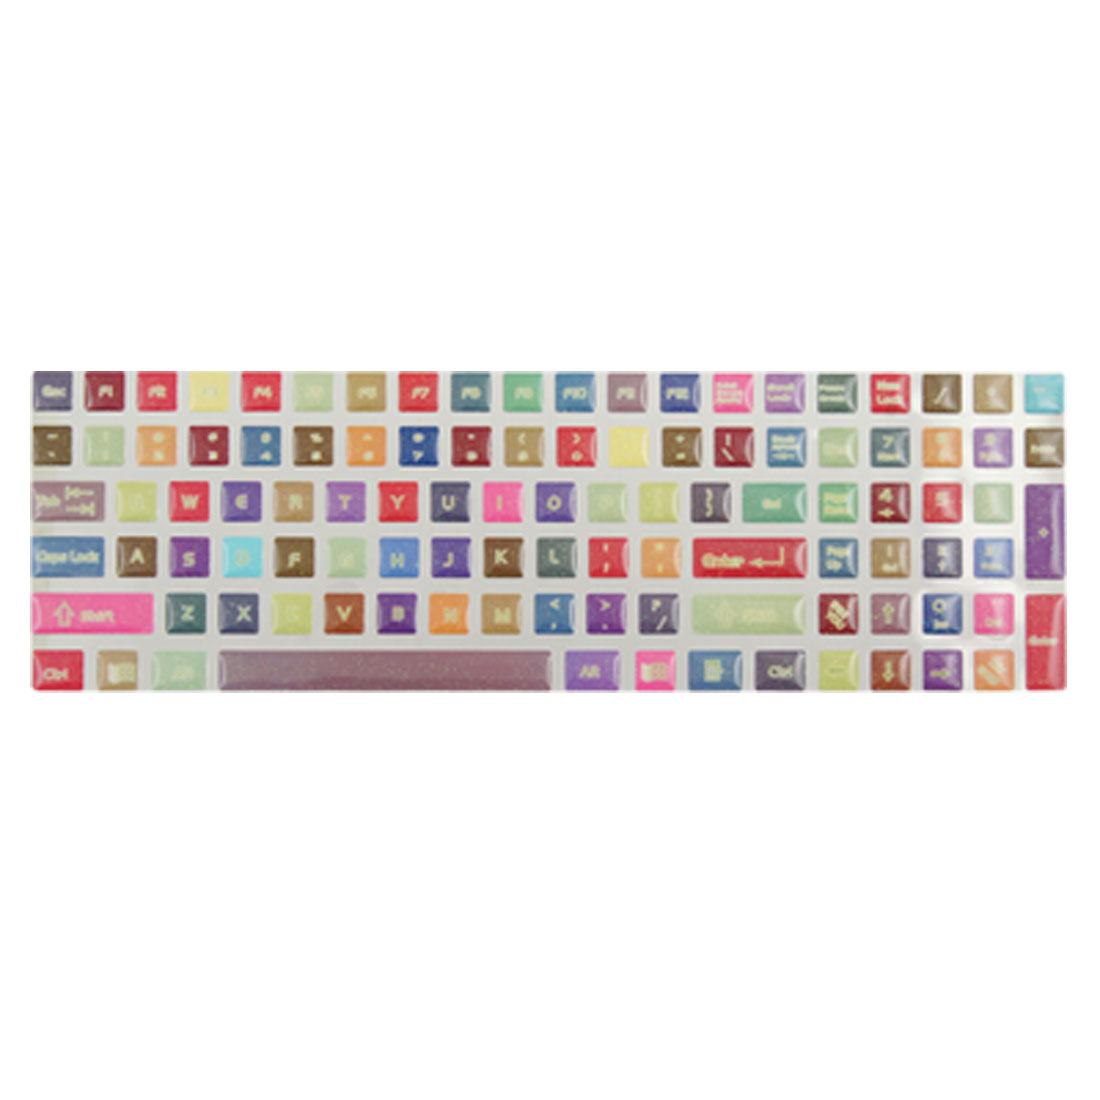 Computer Colorful Glittey Opaque Keyboard Sticker Decal